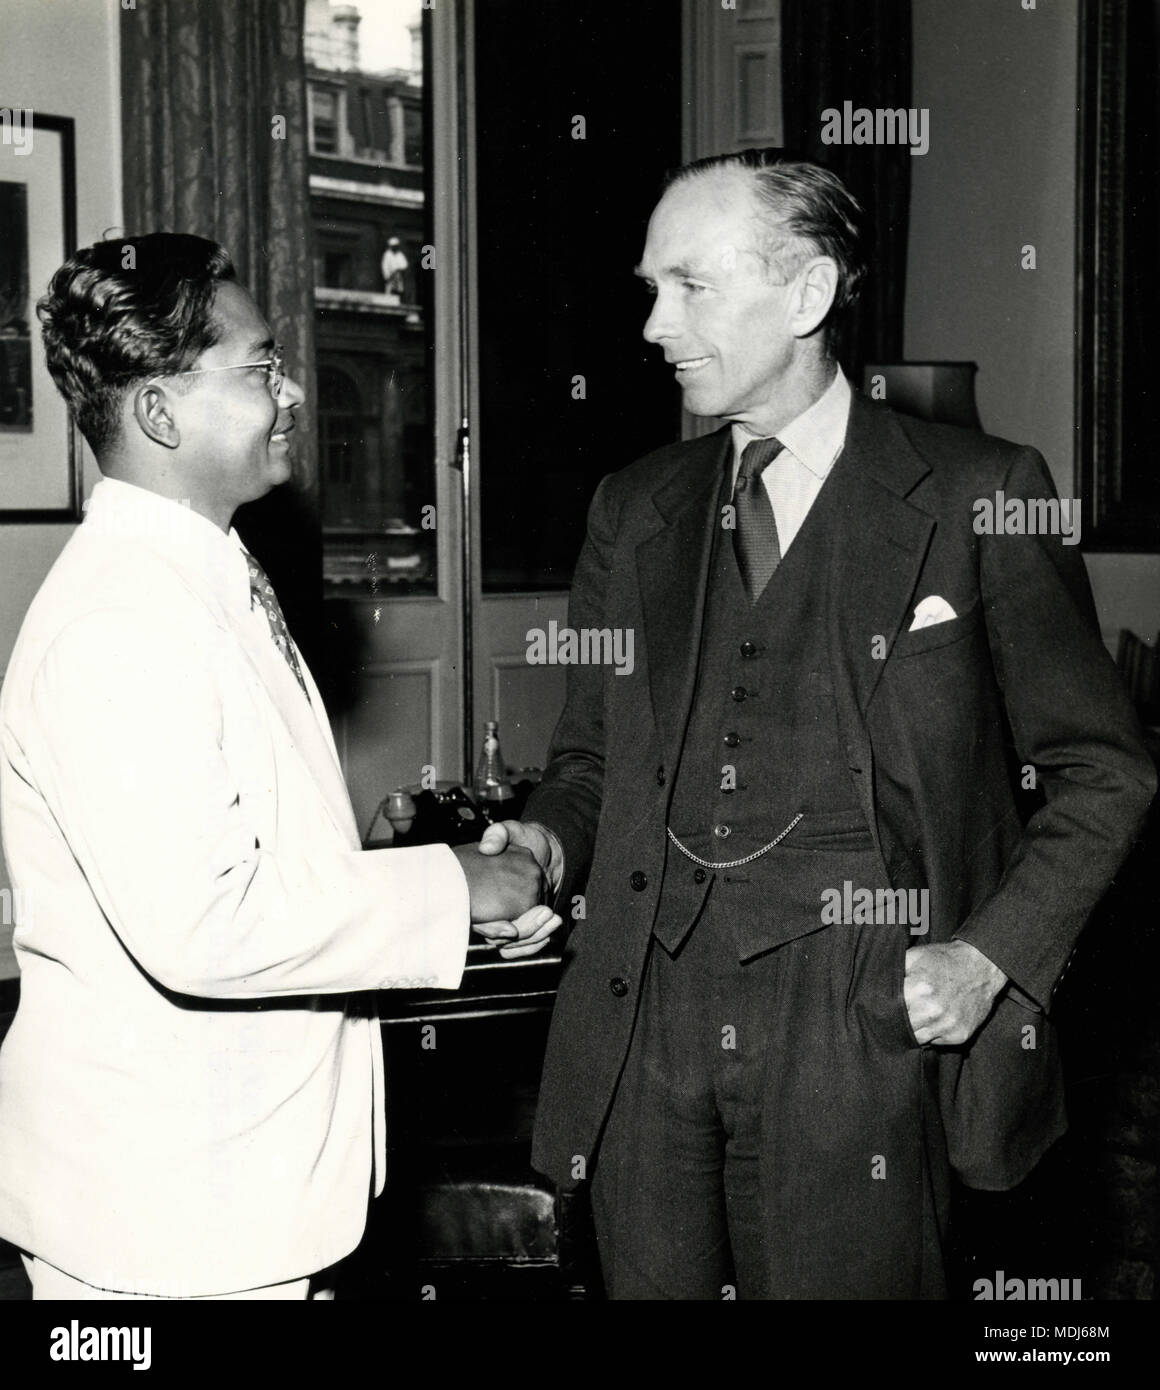 Pakistanische Dr Mazhar-ul-Islam trifft PM Alec Douglas-Home, Graf von Home am Commonwealth Relations Office, London, Großbritannien 1958 Stockbild